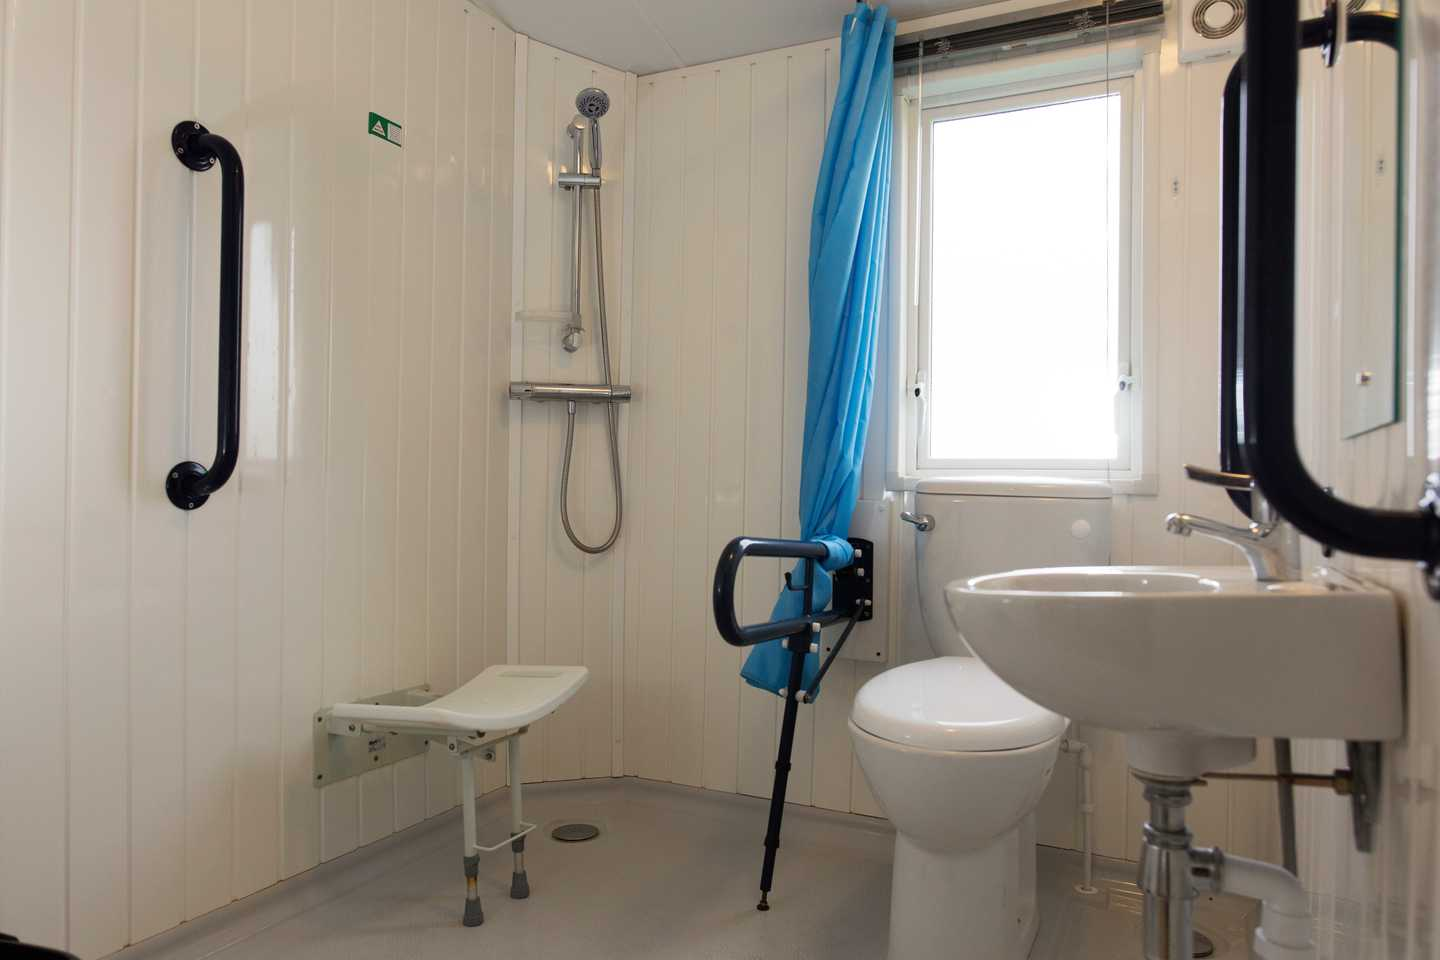 An Adapted caravan wet room